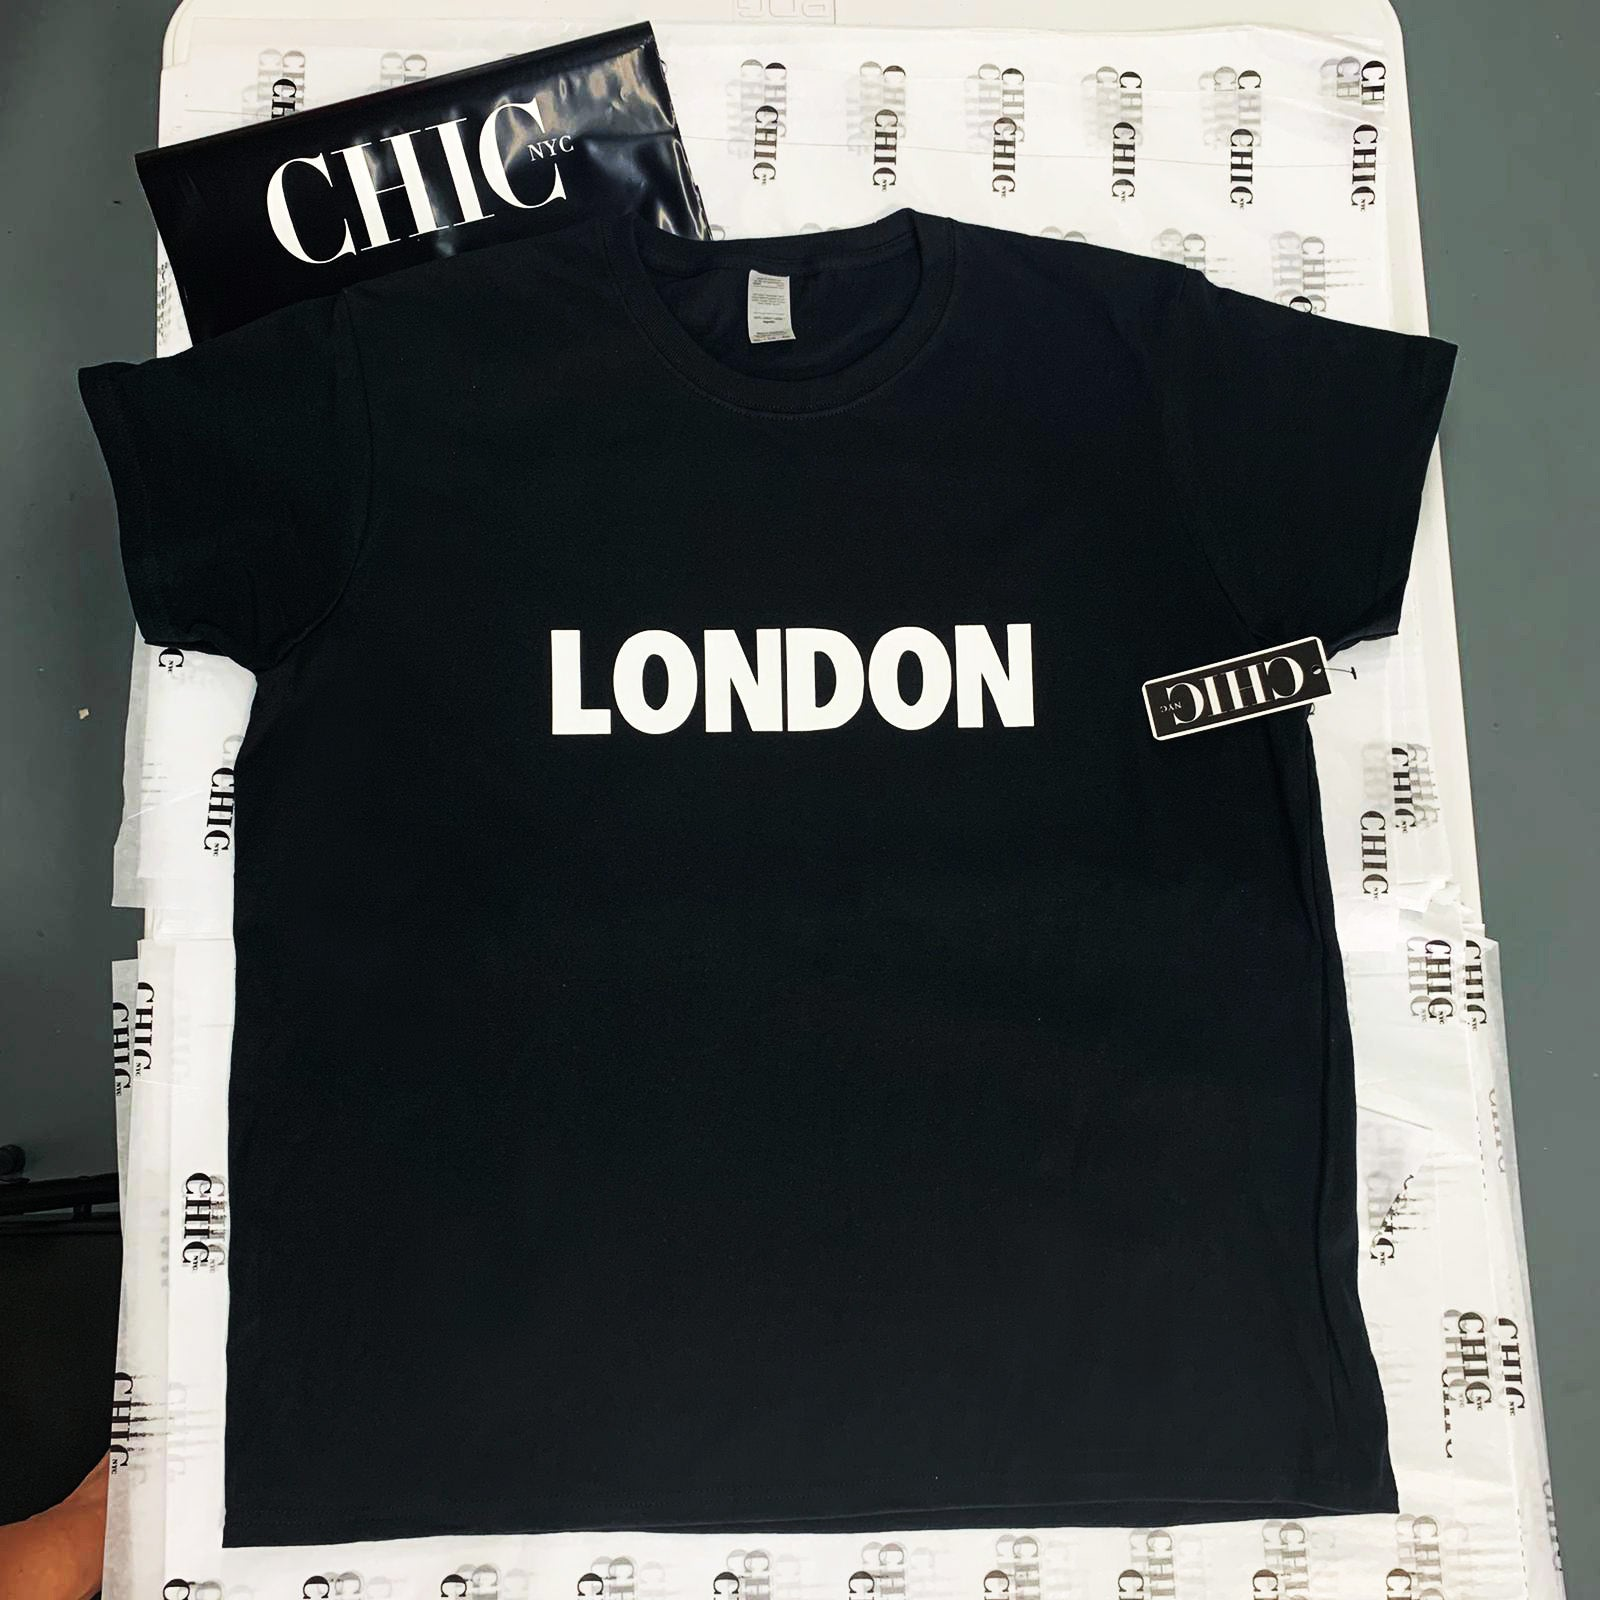 London Famous Tee - Black, White or Gray